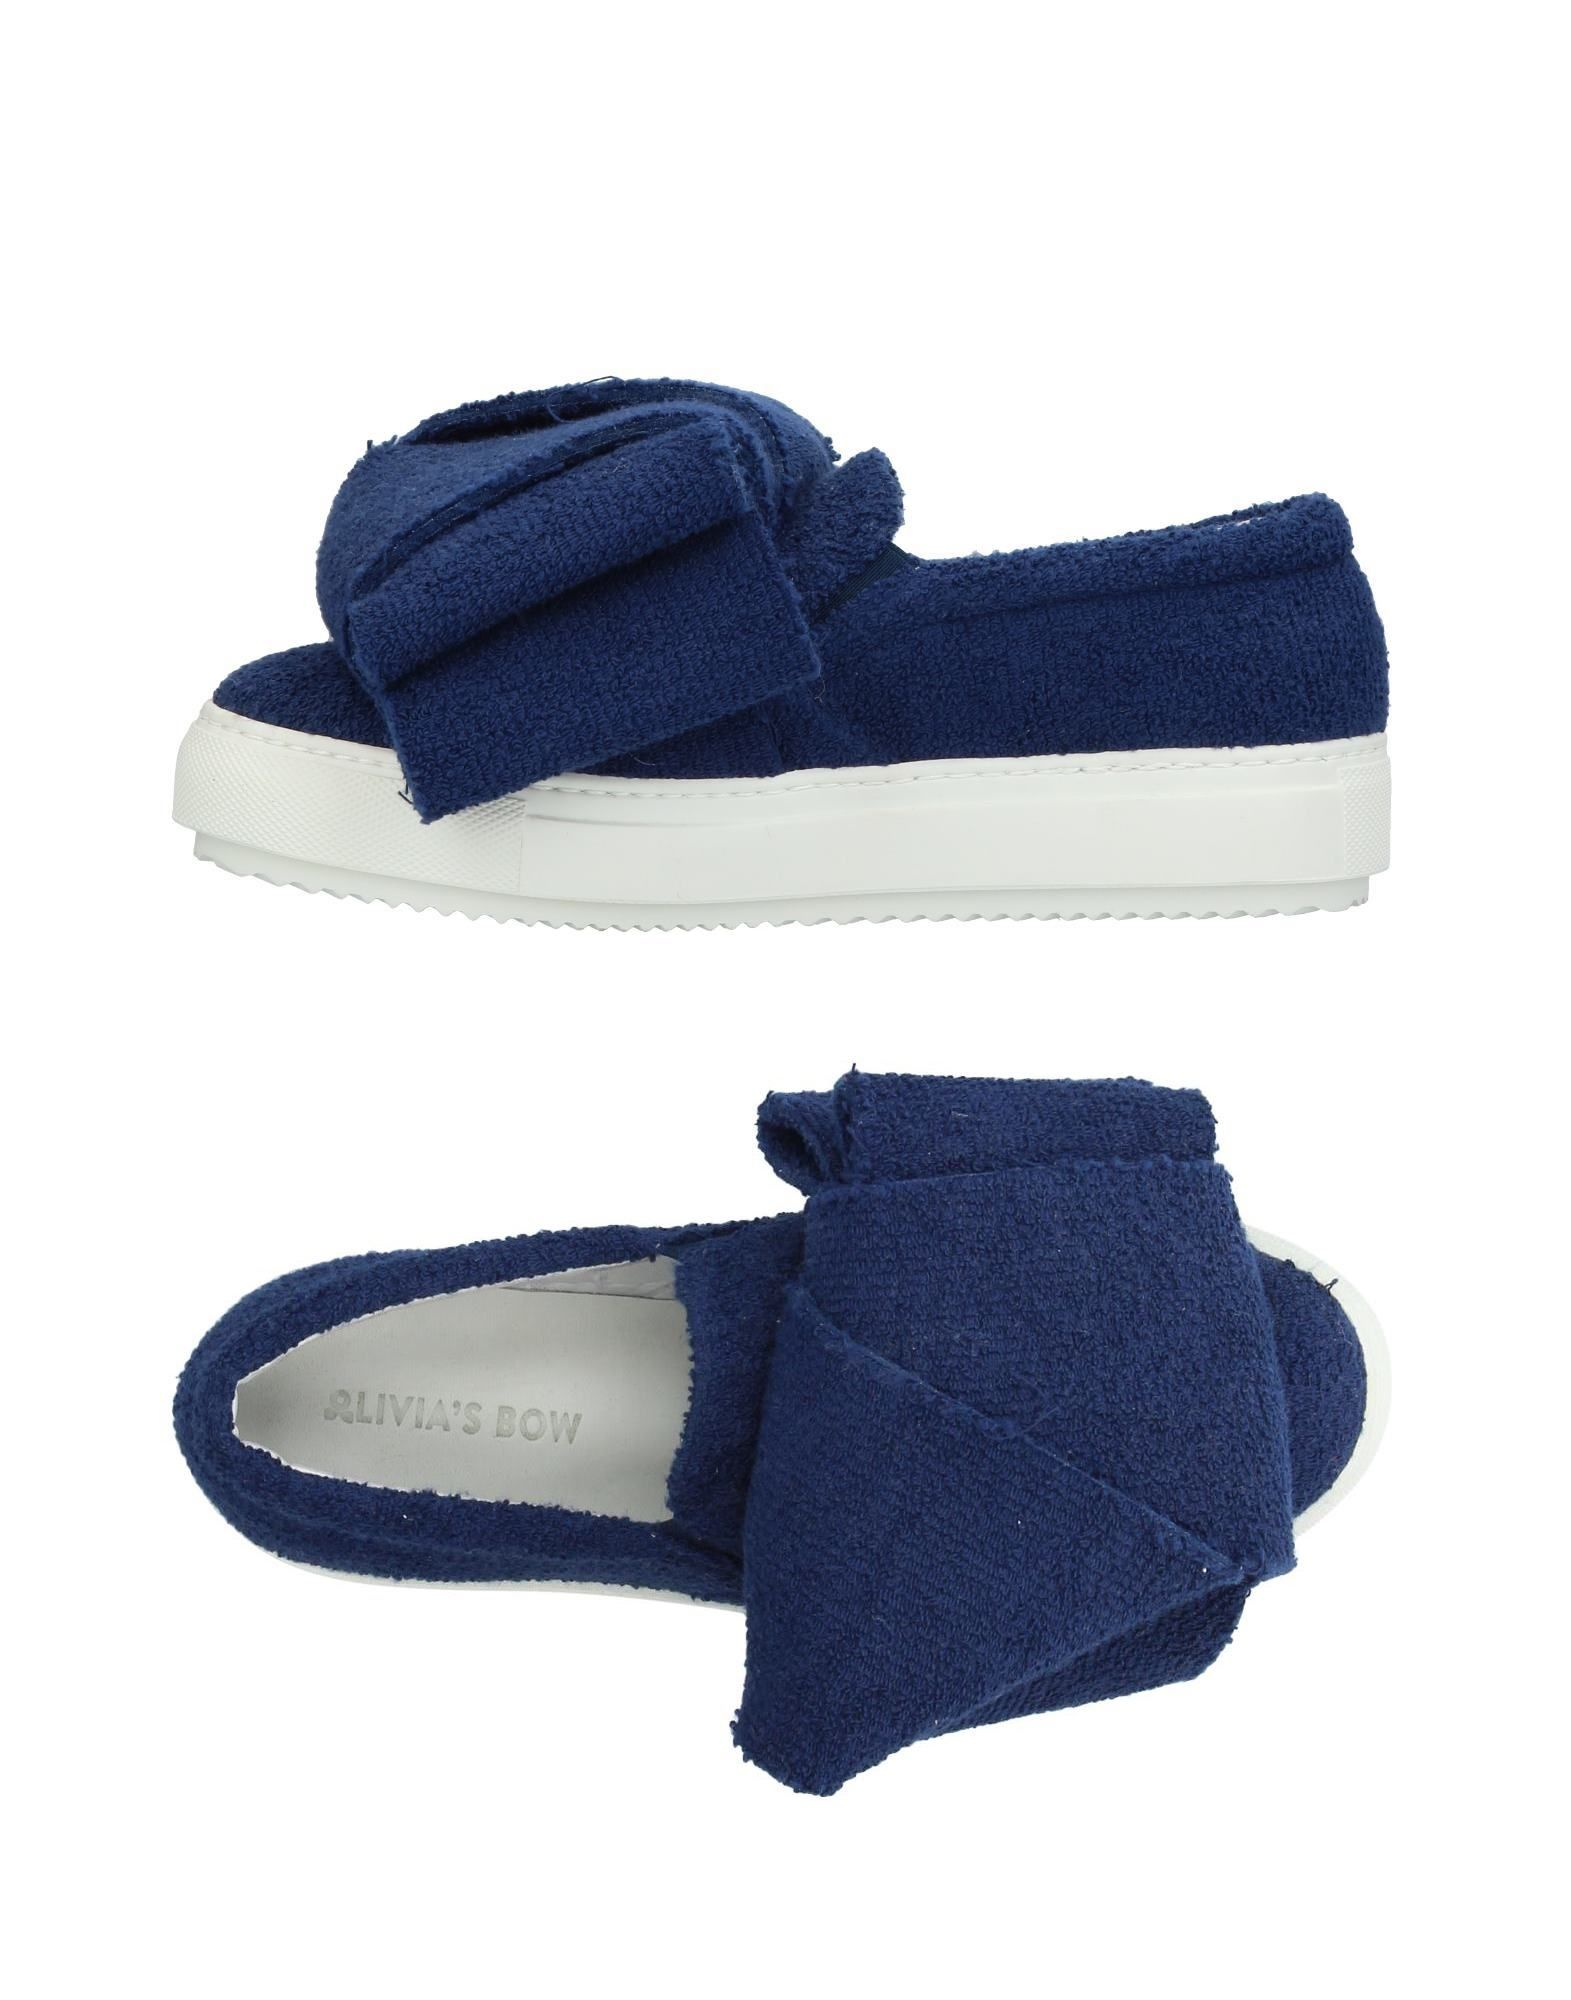 Sneakers Olivia's Bow Donna - 11372018CH